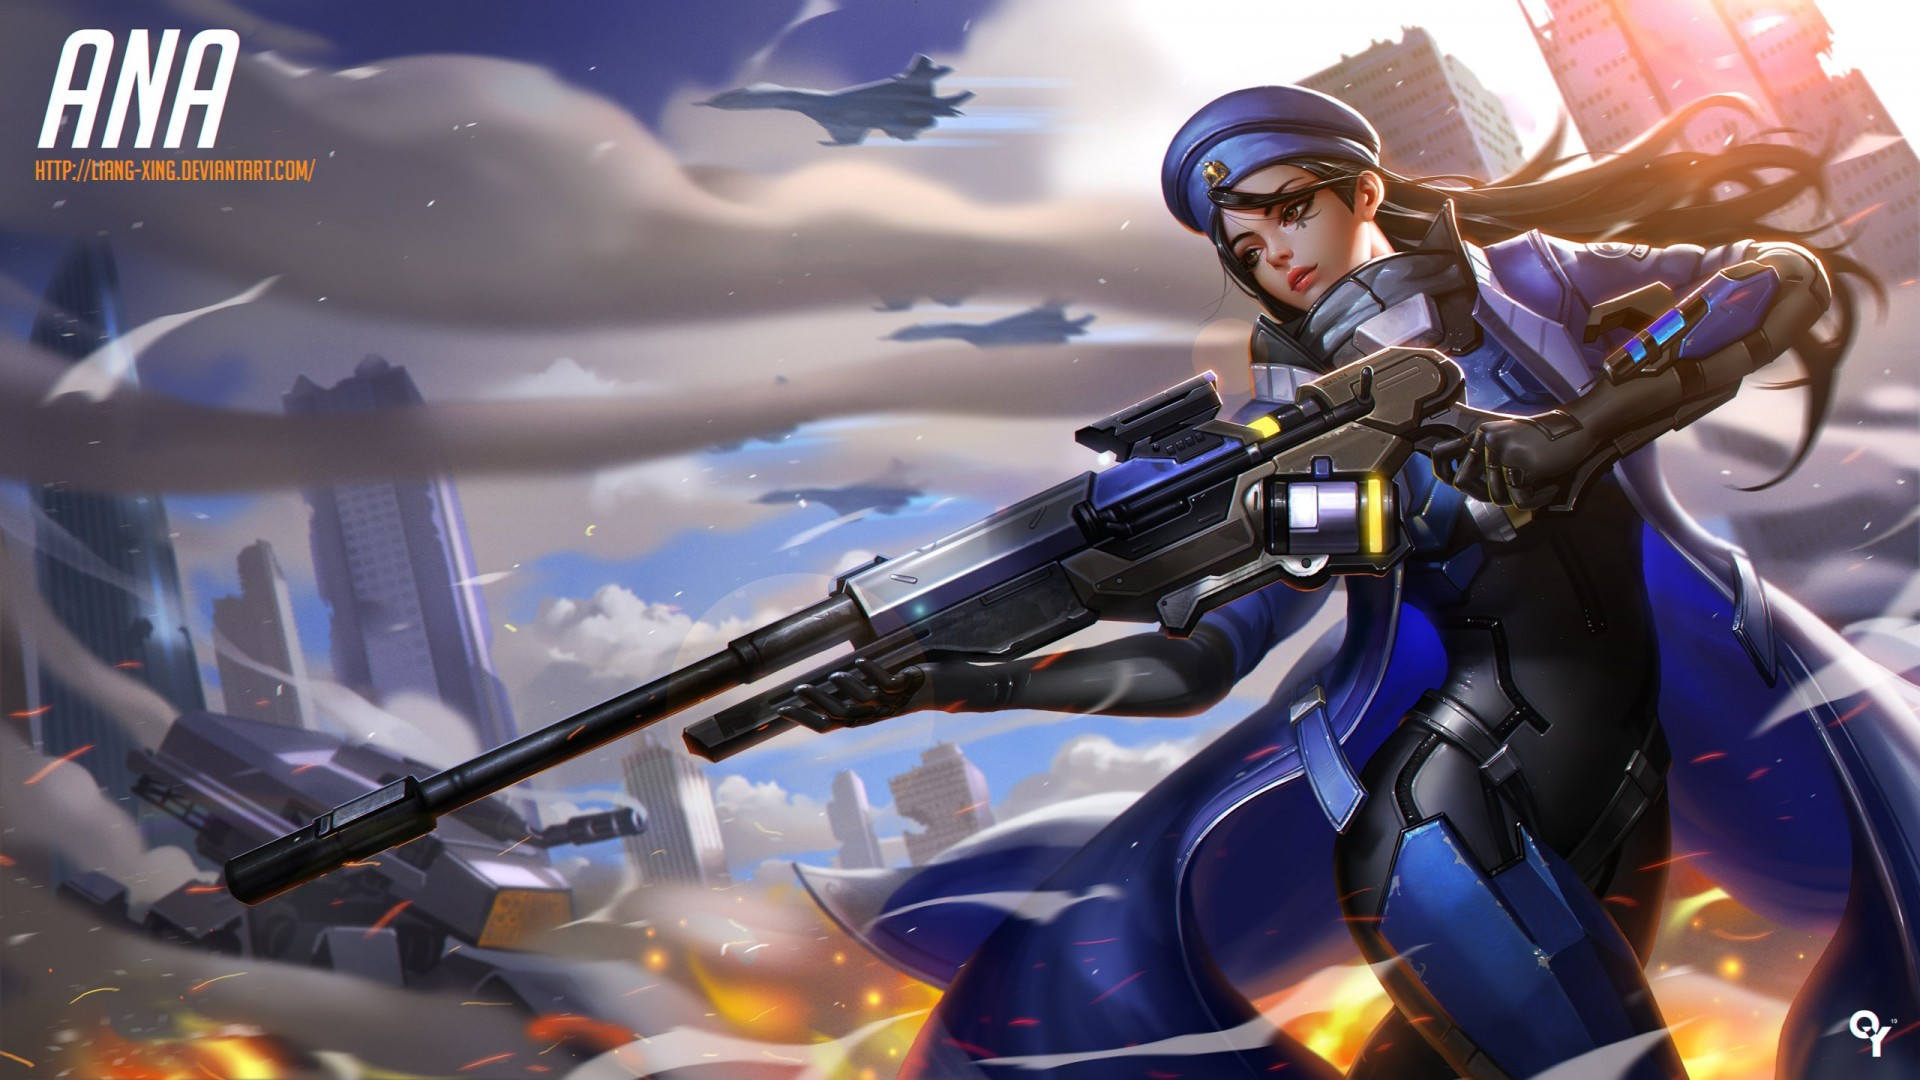 Ana Overwatch Wallpapers HD Wallpapers ID 18458